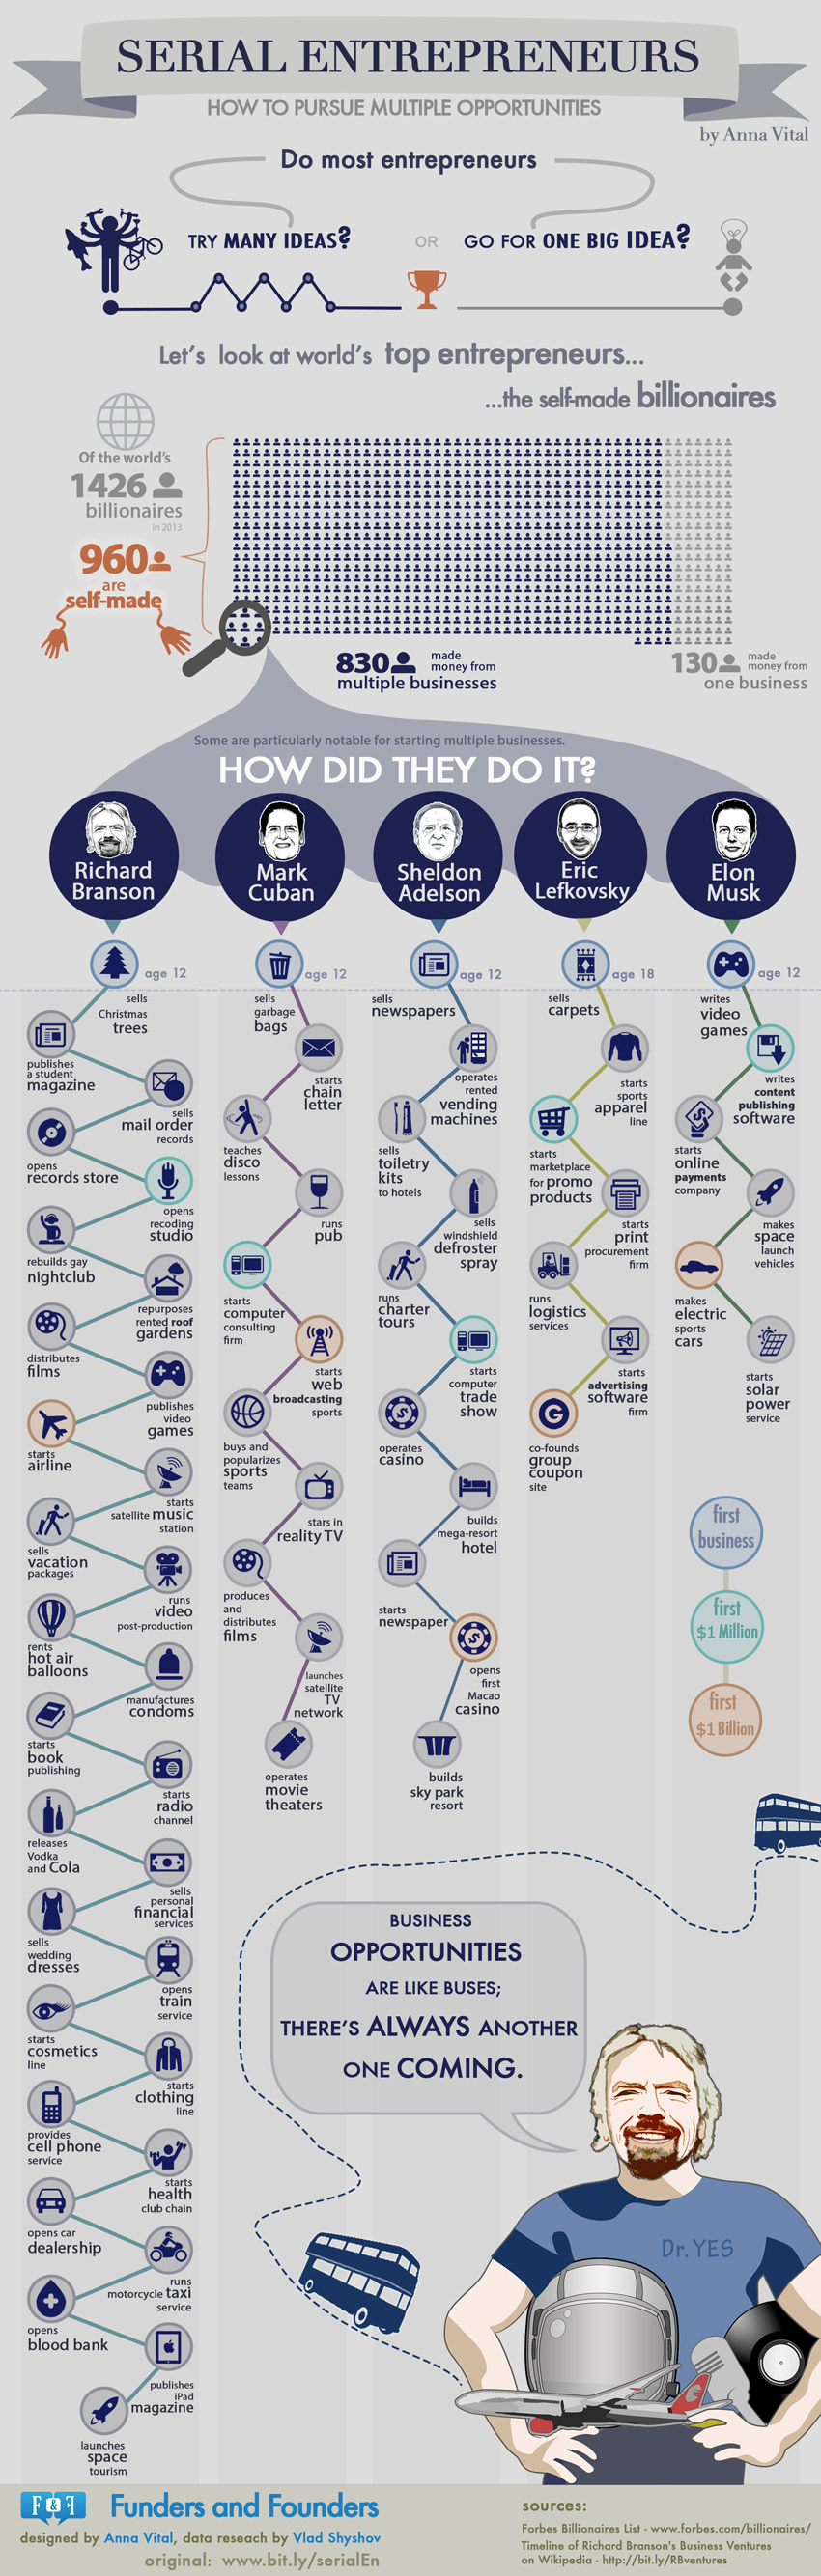 Serial Entrepreneurs - How to Pursue Multiple Opportunites [Infographic]